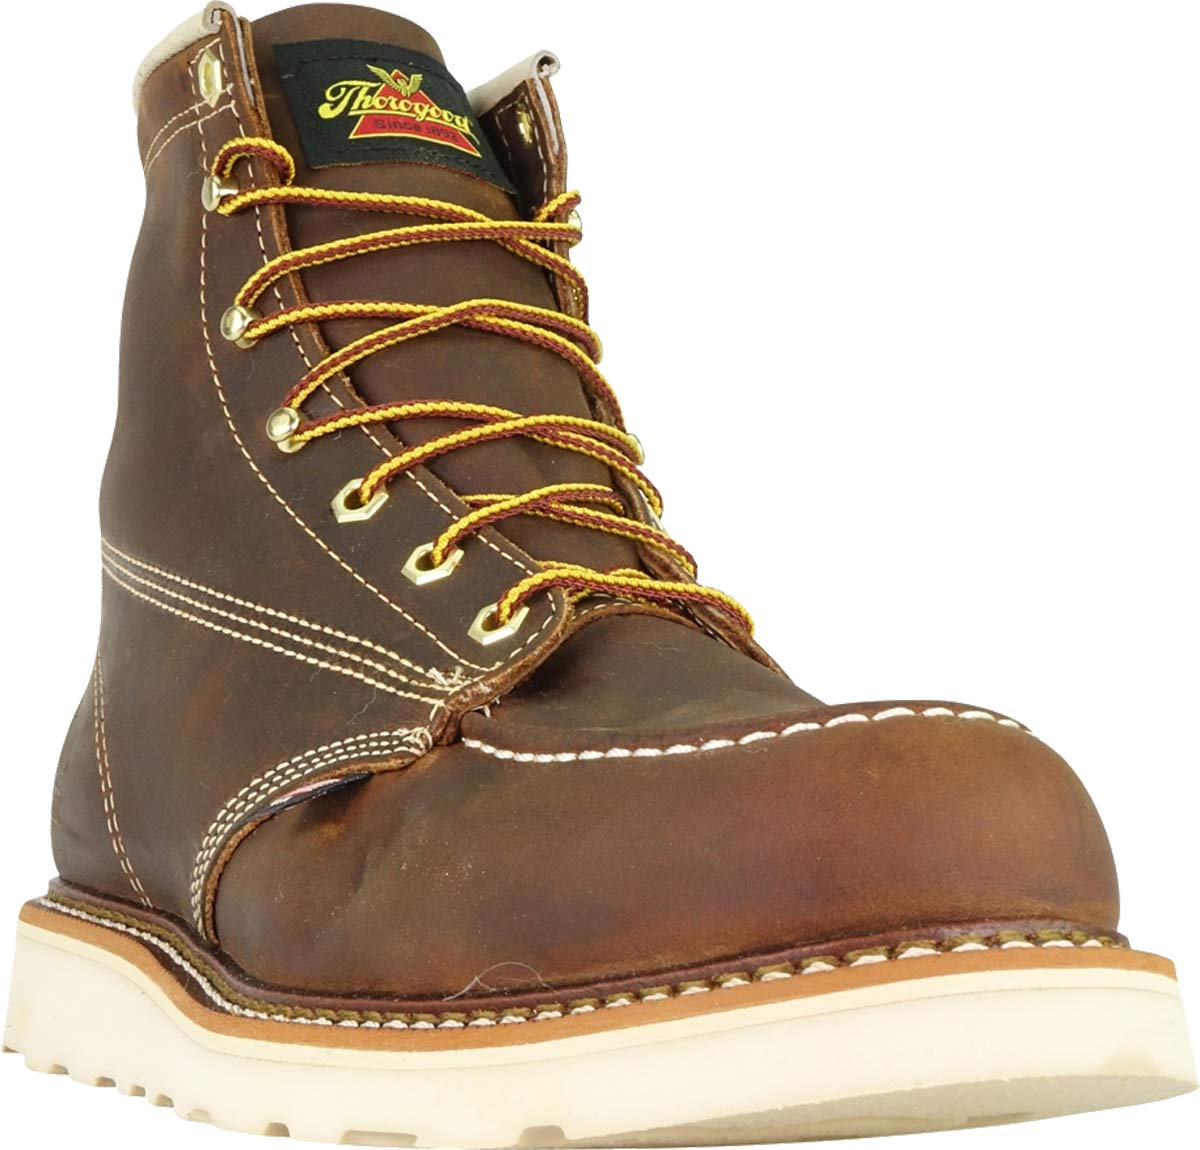 Thorogood-American-Heritage-Men-039-s-6-034-Moc-Toe-Max-Wedge-Non-Safety-Boots thumbnail 28